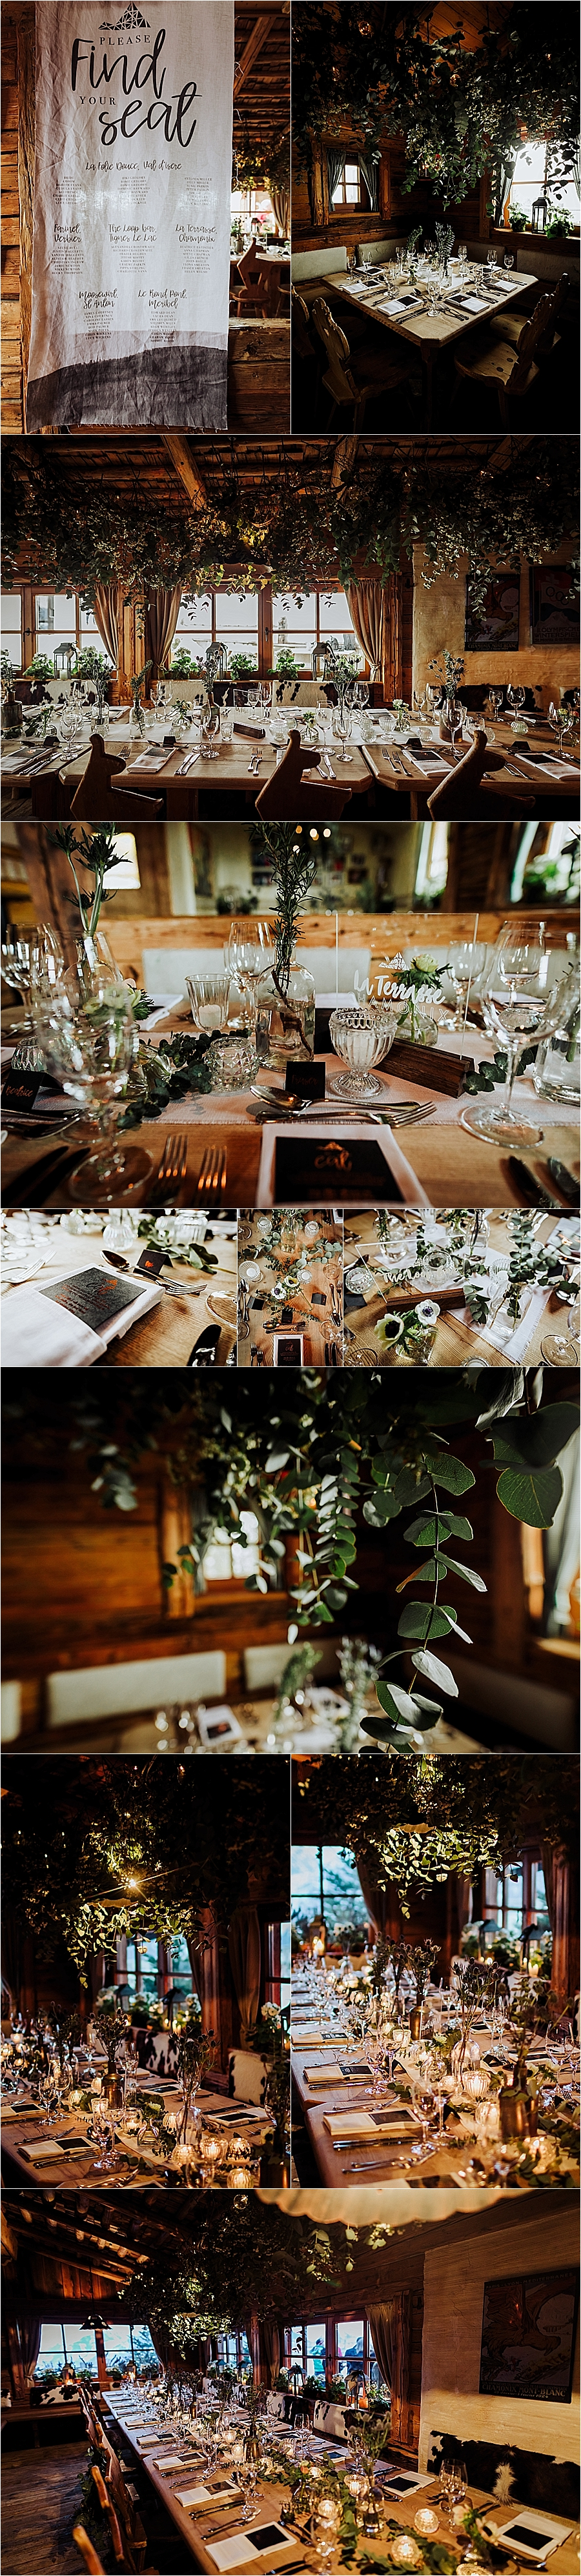 A mountain restaurant apres ski inspired wedding at the Toni Alm in Austria by Wild Connections Photography